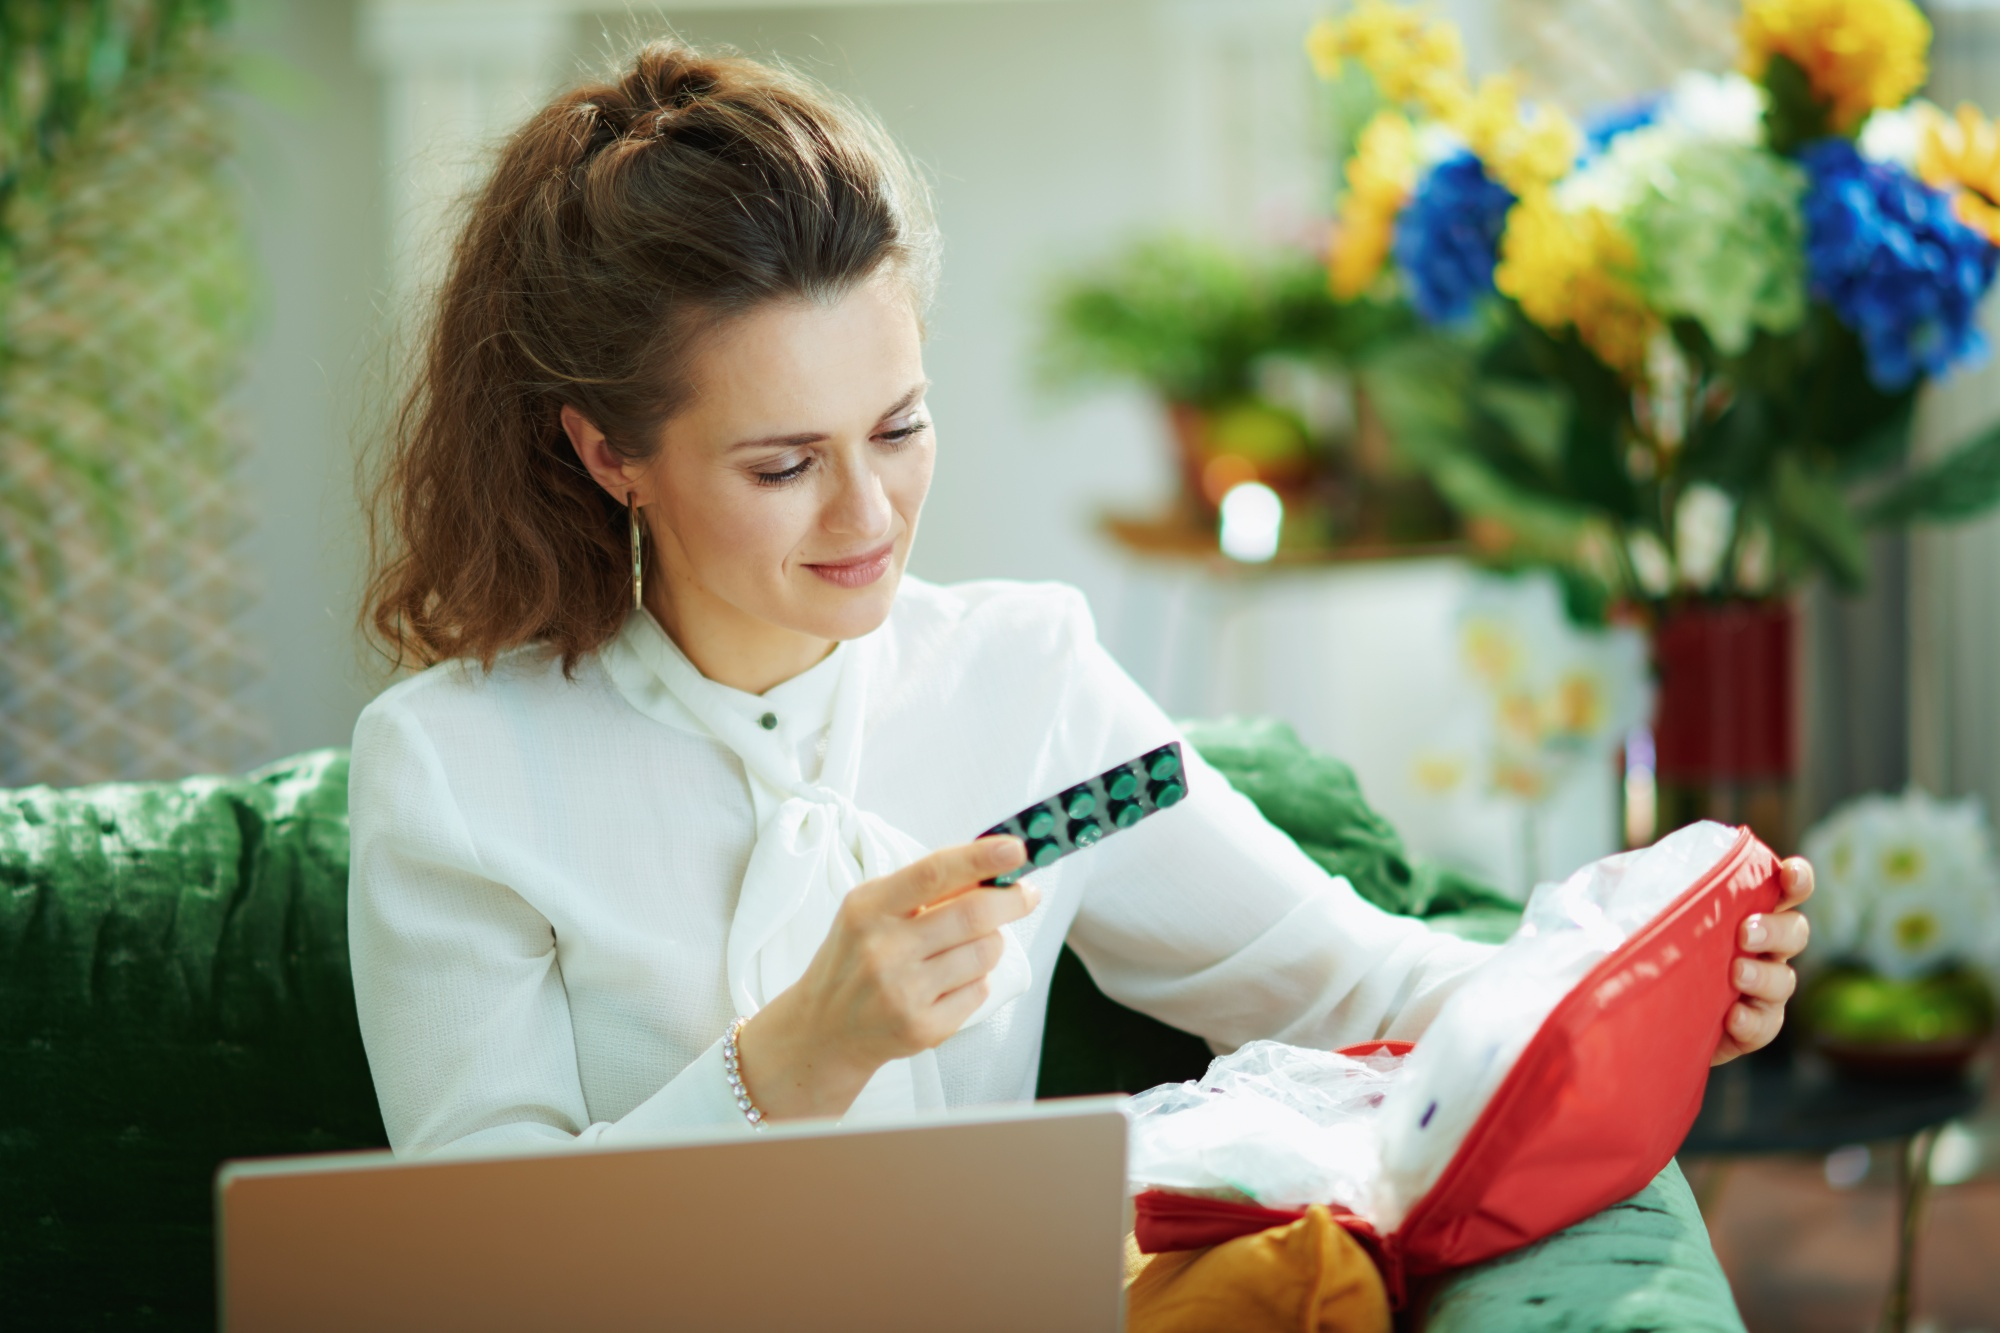 better sex after menopause, Brunette woman in white blouse checking medication at laptop